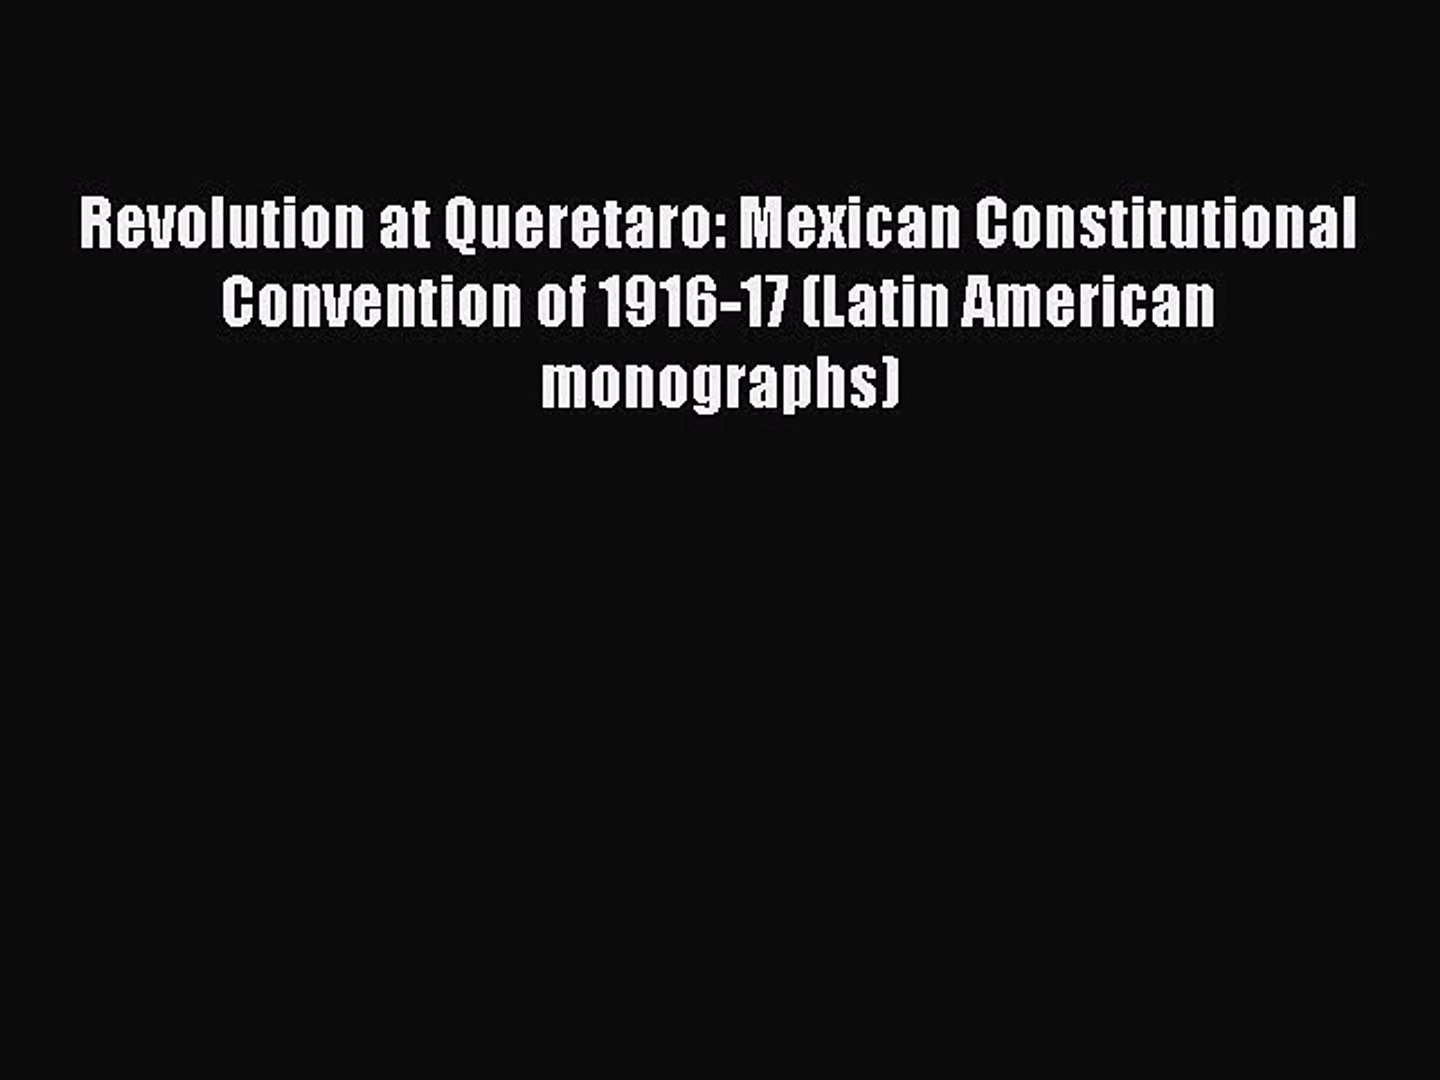 Revolution at Queretaro: Mexican Constitutional Convention of 1916-17 (Latin American monographs)